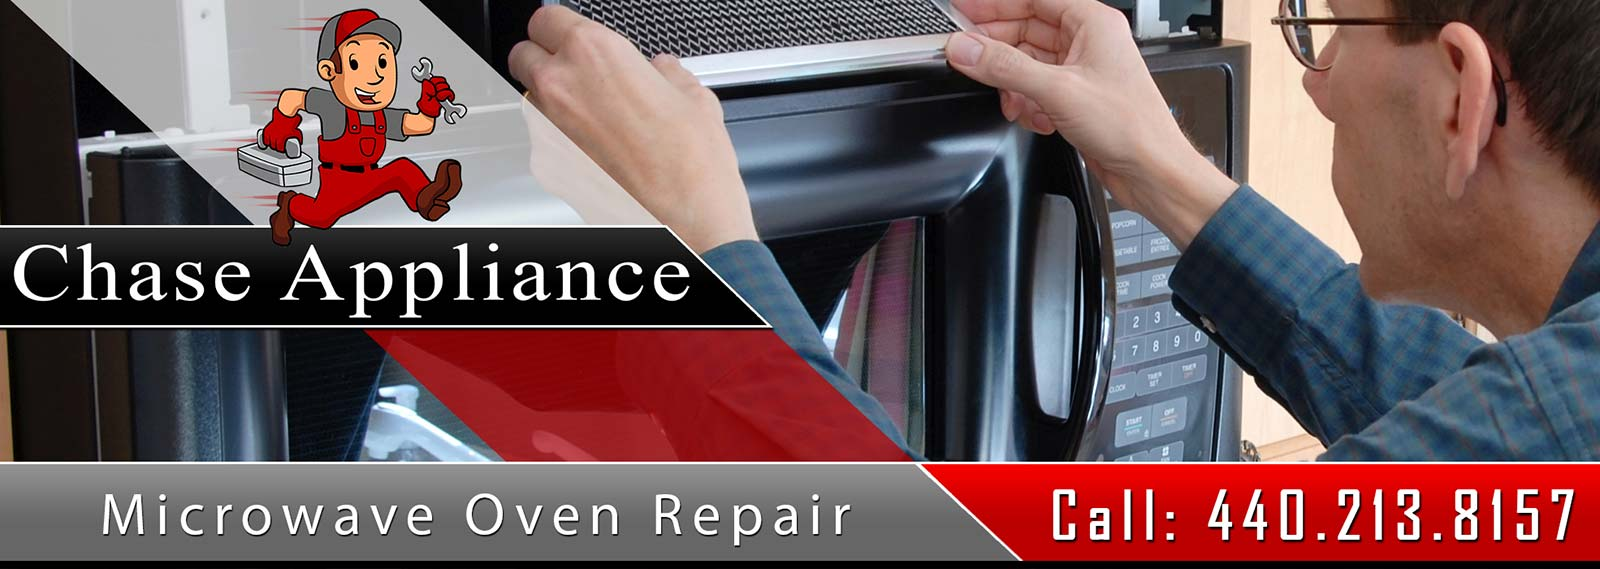 Microwave Oven Appliance Repair and Service